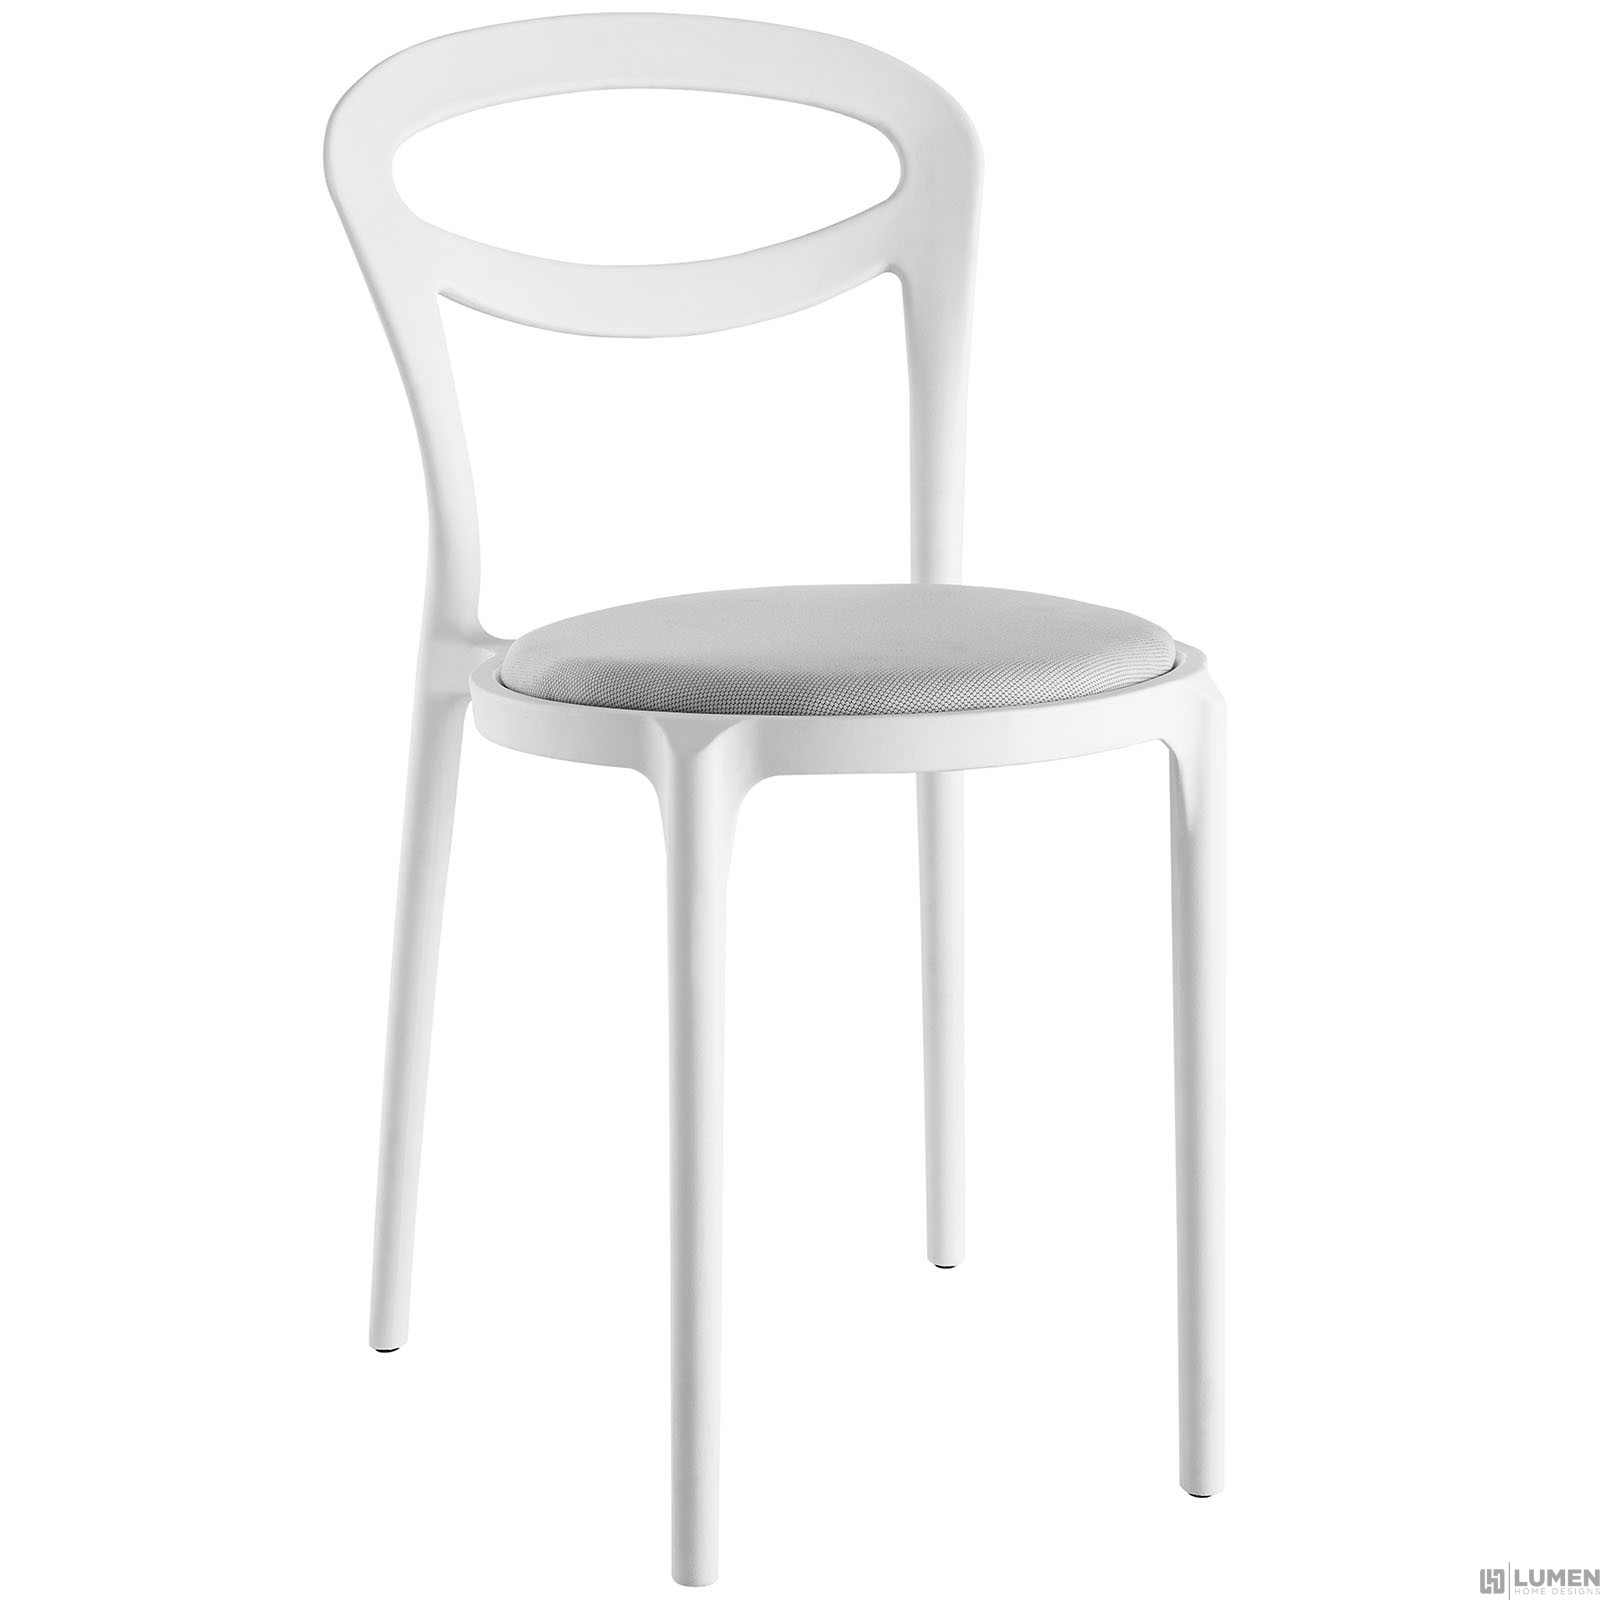 LHD-1772-WHI-GRY-Dining Chair